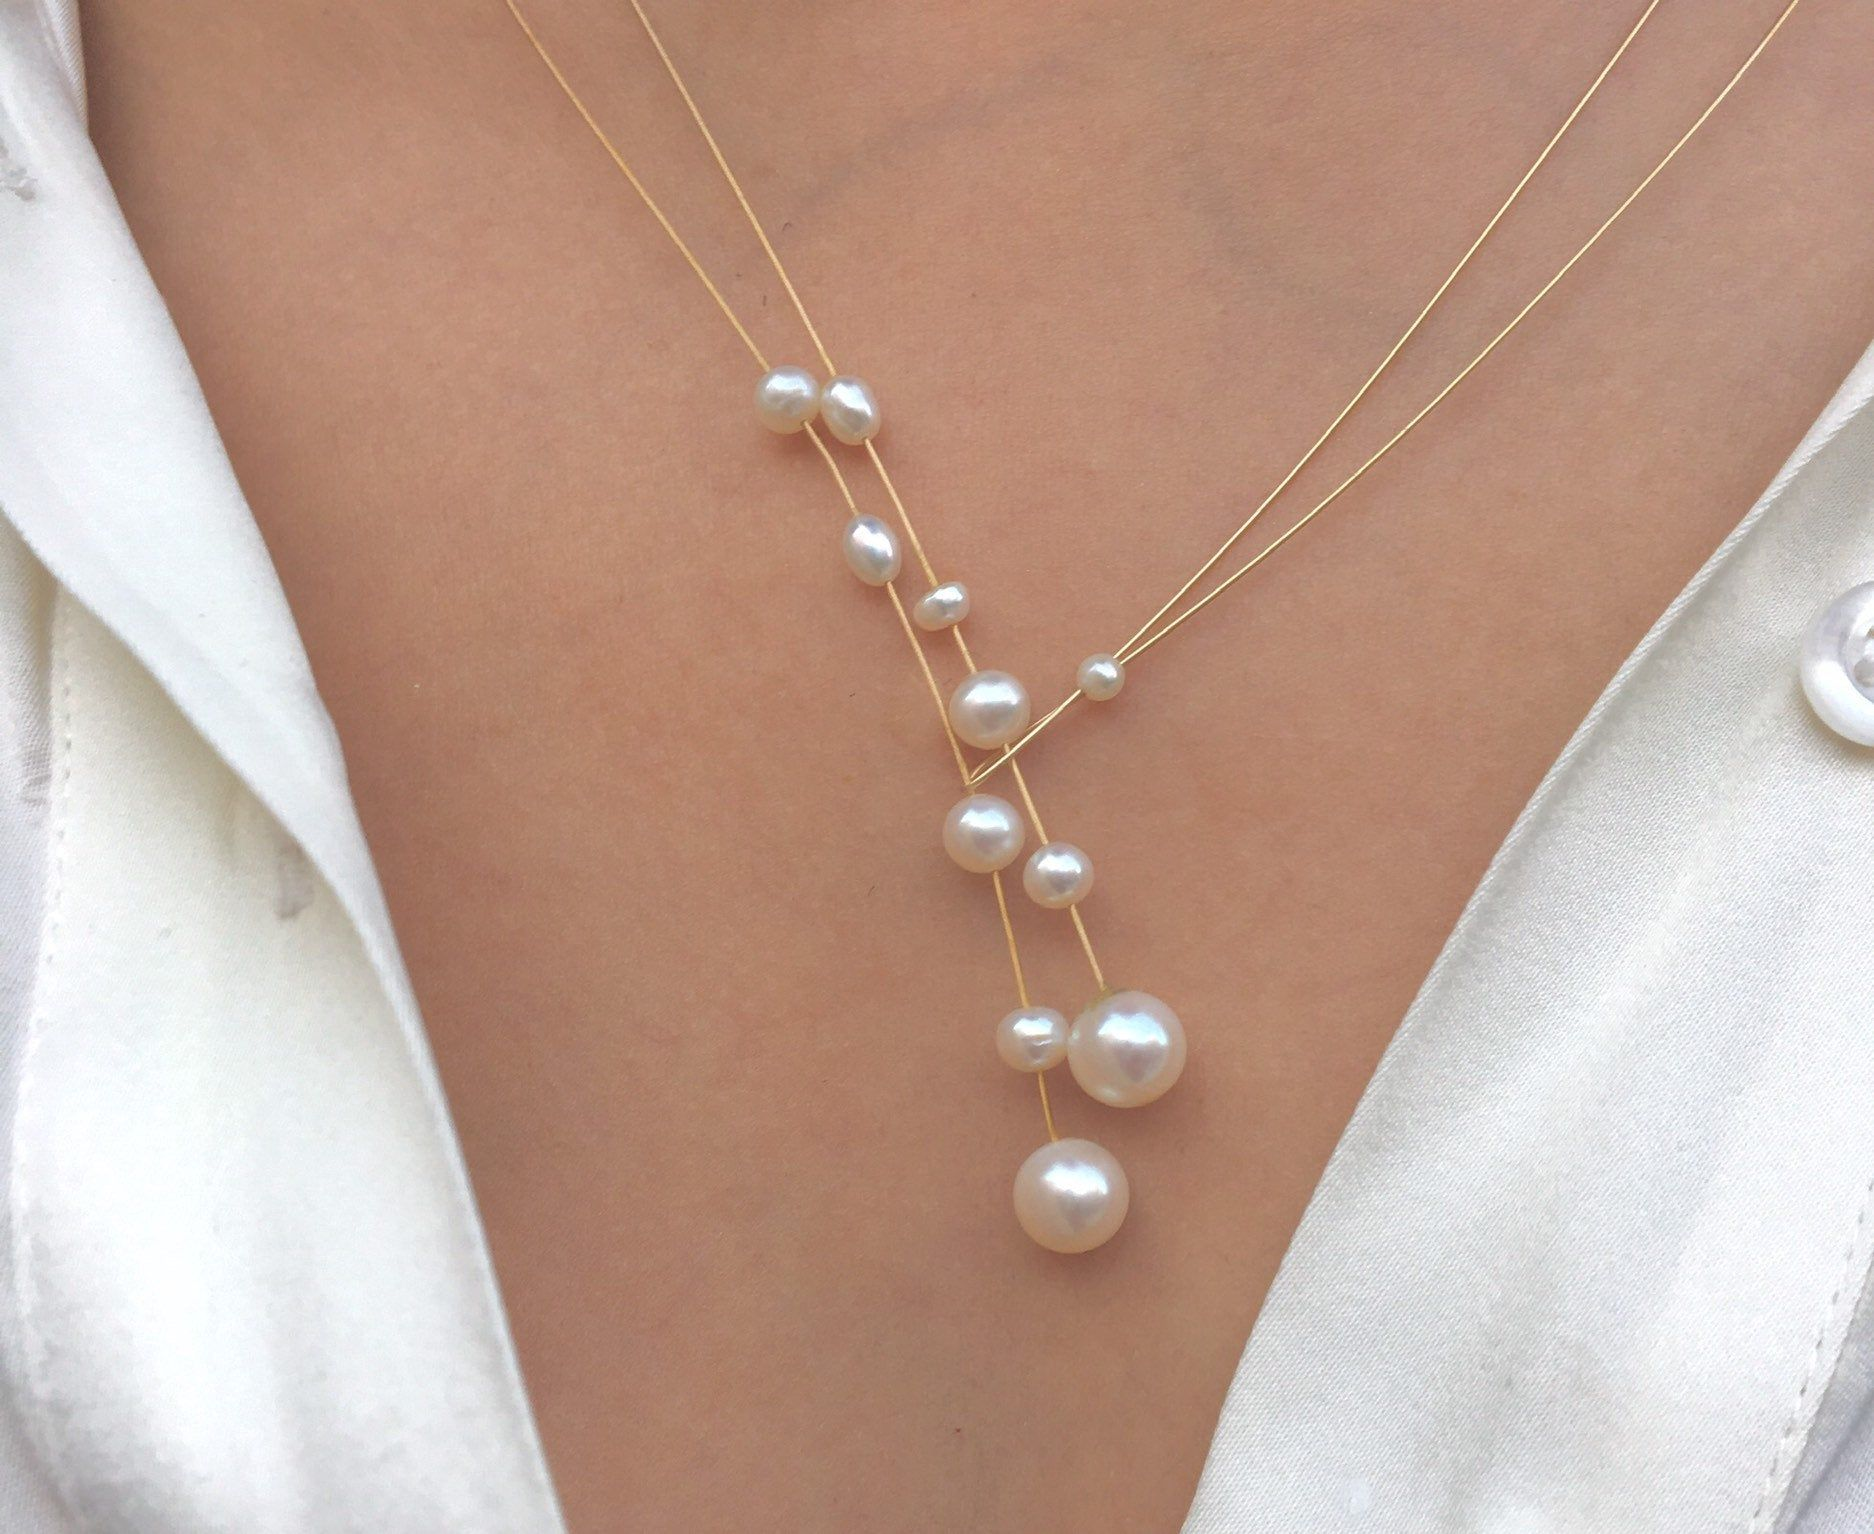 Modern and classic pearl necklace. Freshwater pearls combined parts of gold and a hand forged closure.